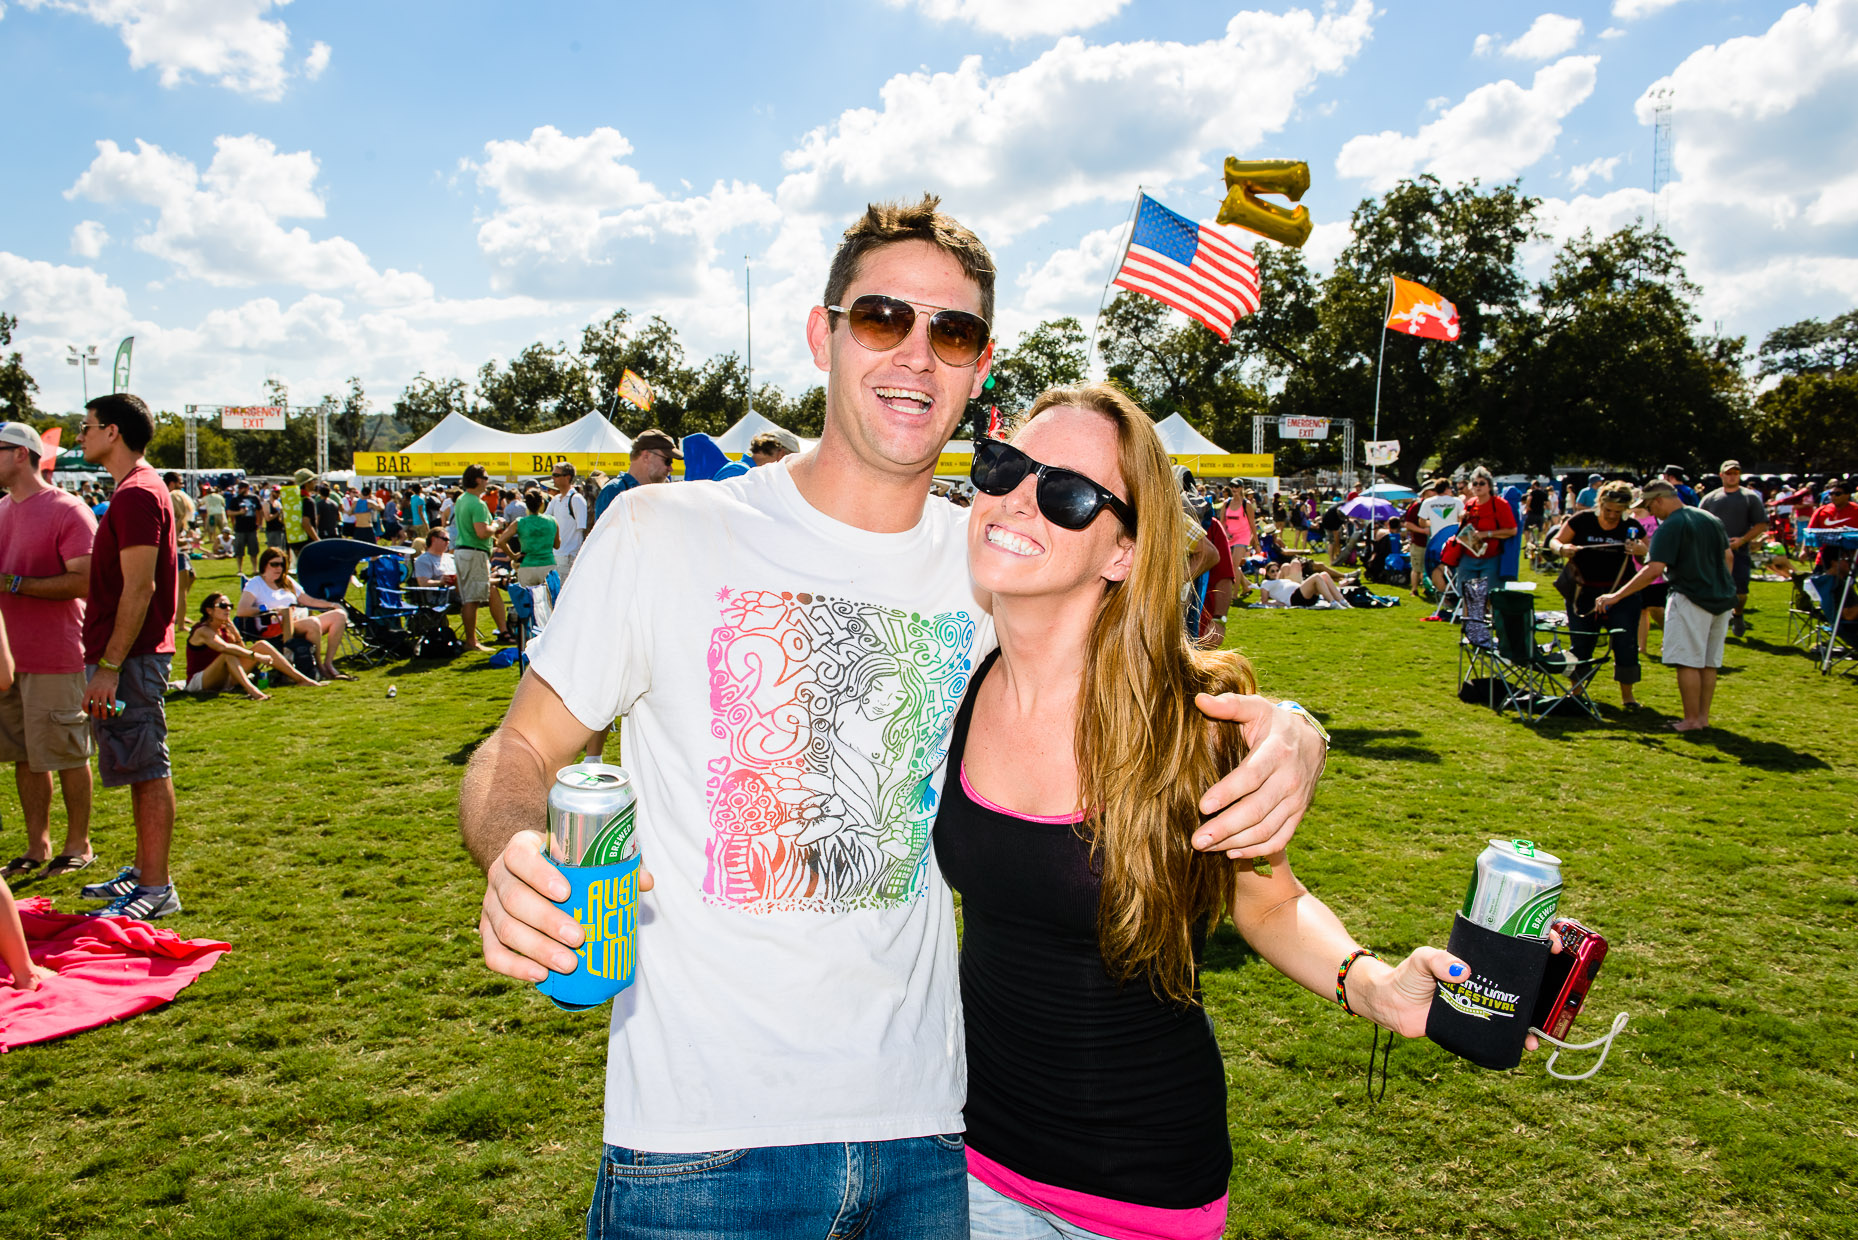 ACL-Austin-City-Limits-Music-Festival-Photographer-Tx.jpg